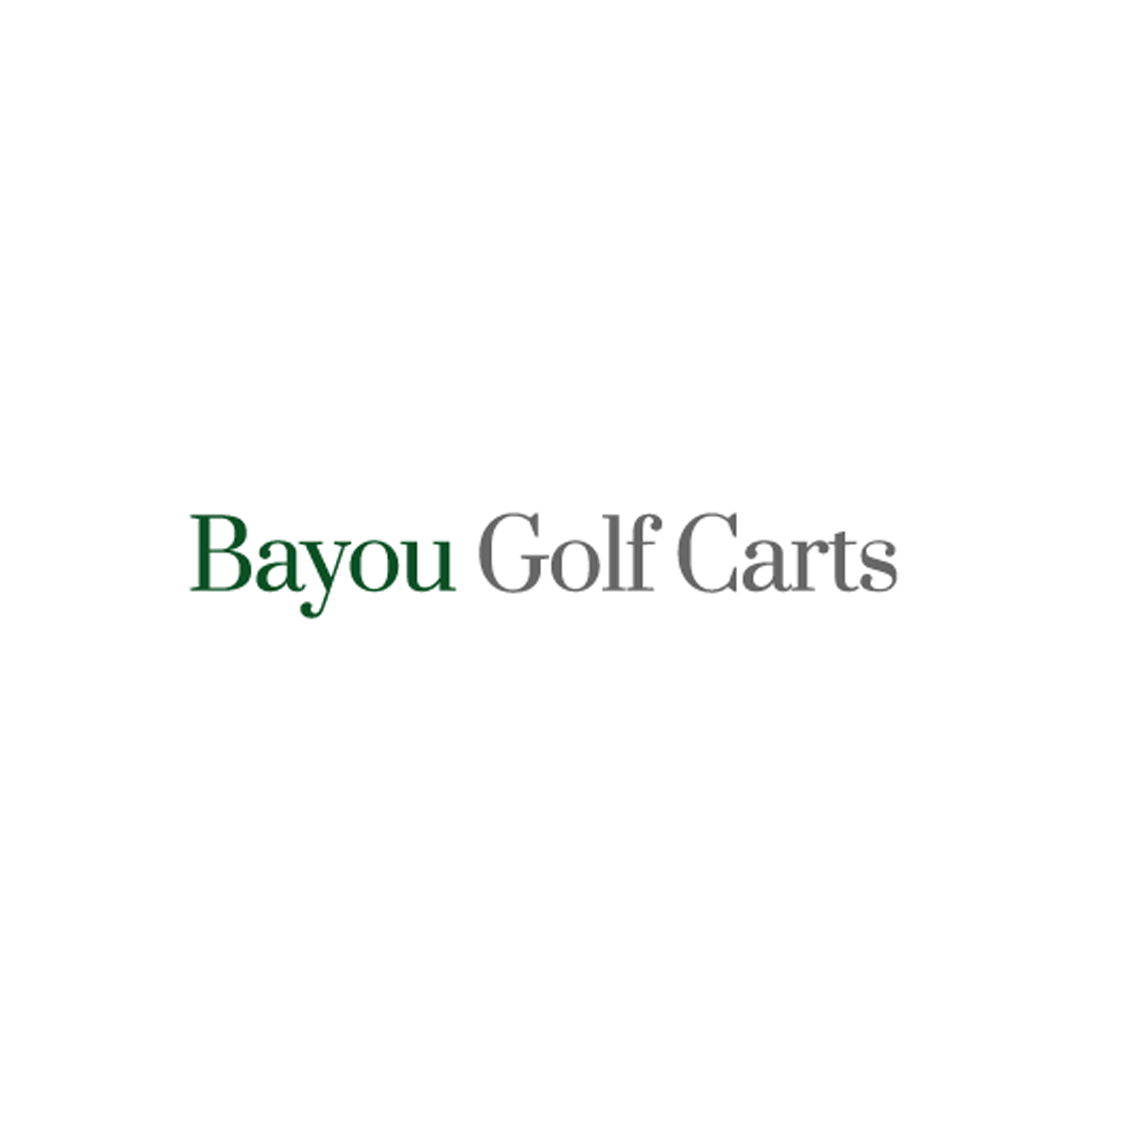 Golf coupons near me